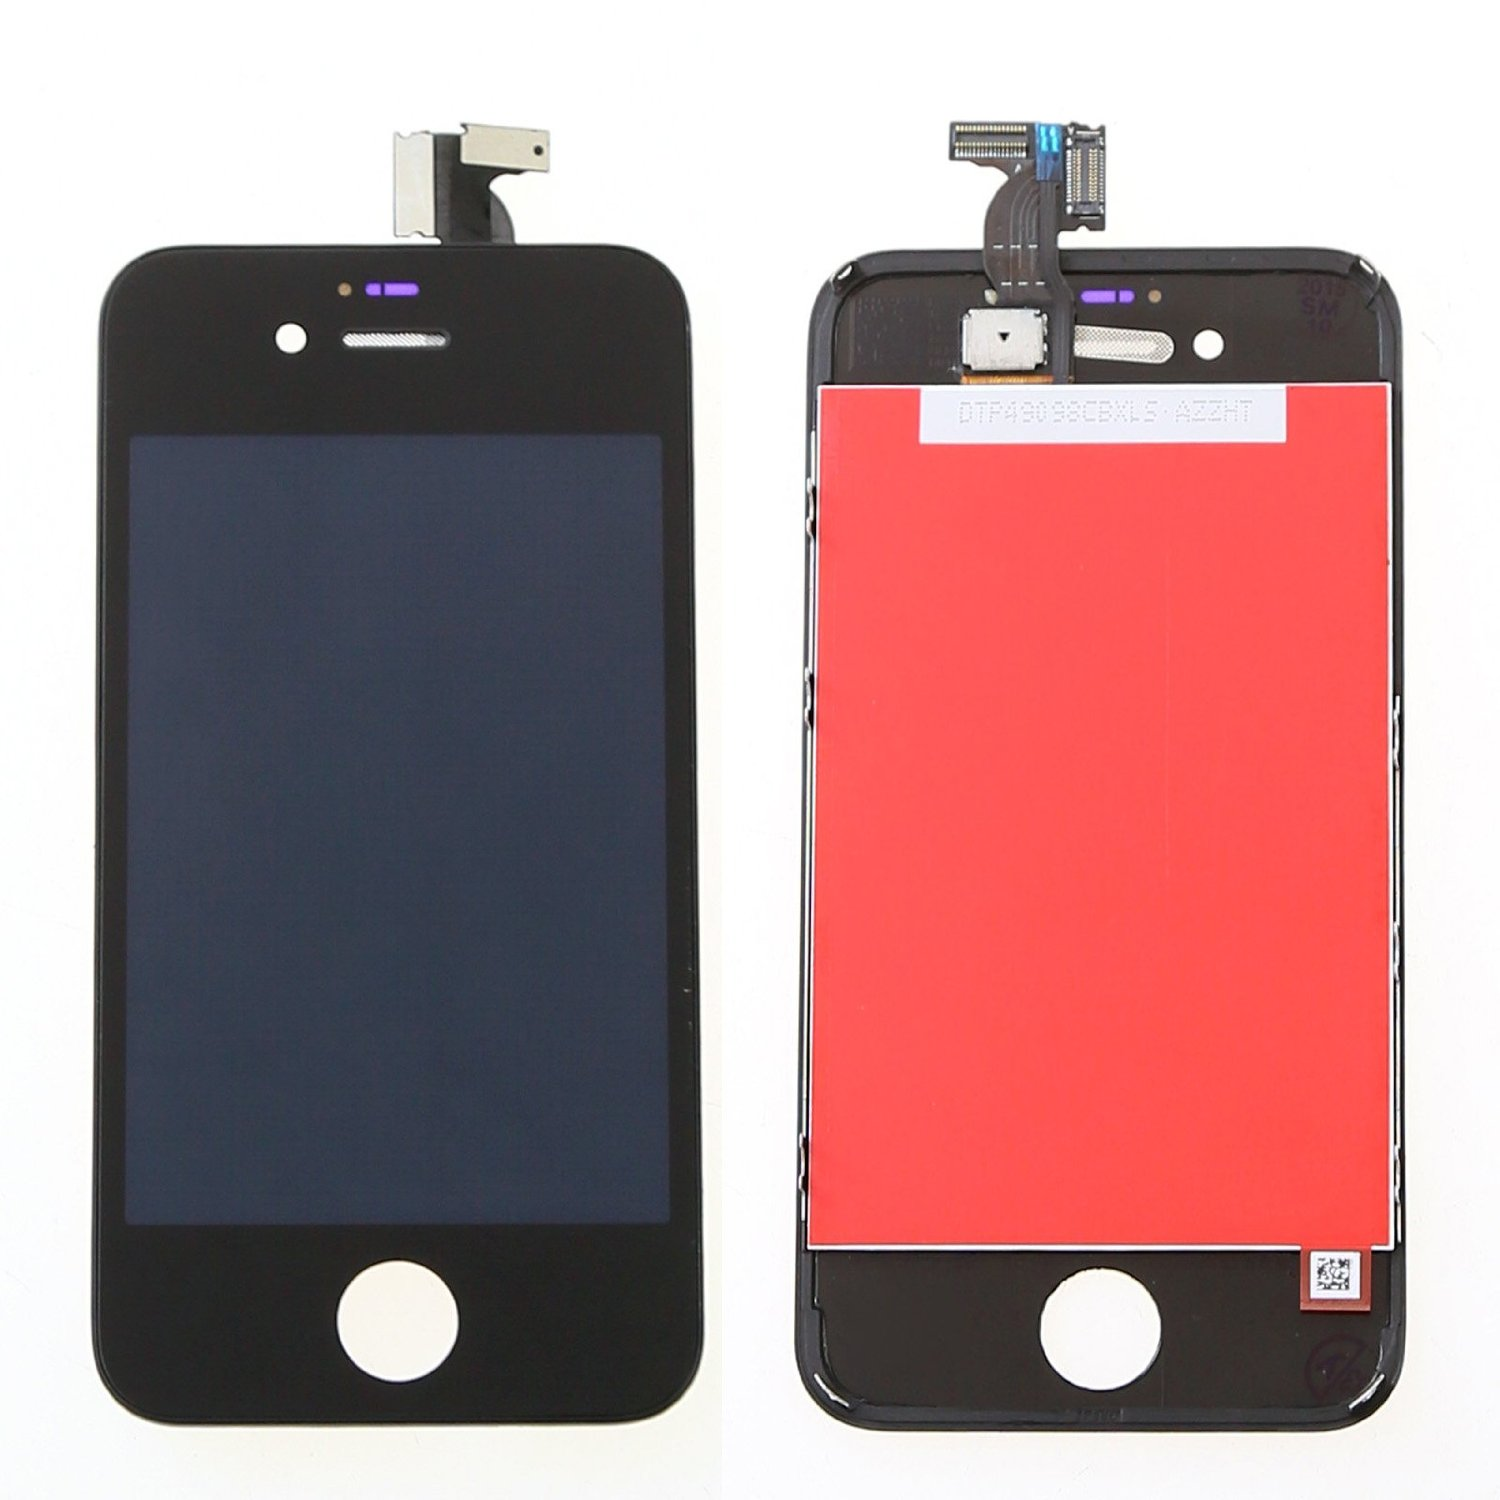 iphone 4s screen repair start here for iphone 4s screen replacement info amp tips 2162